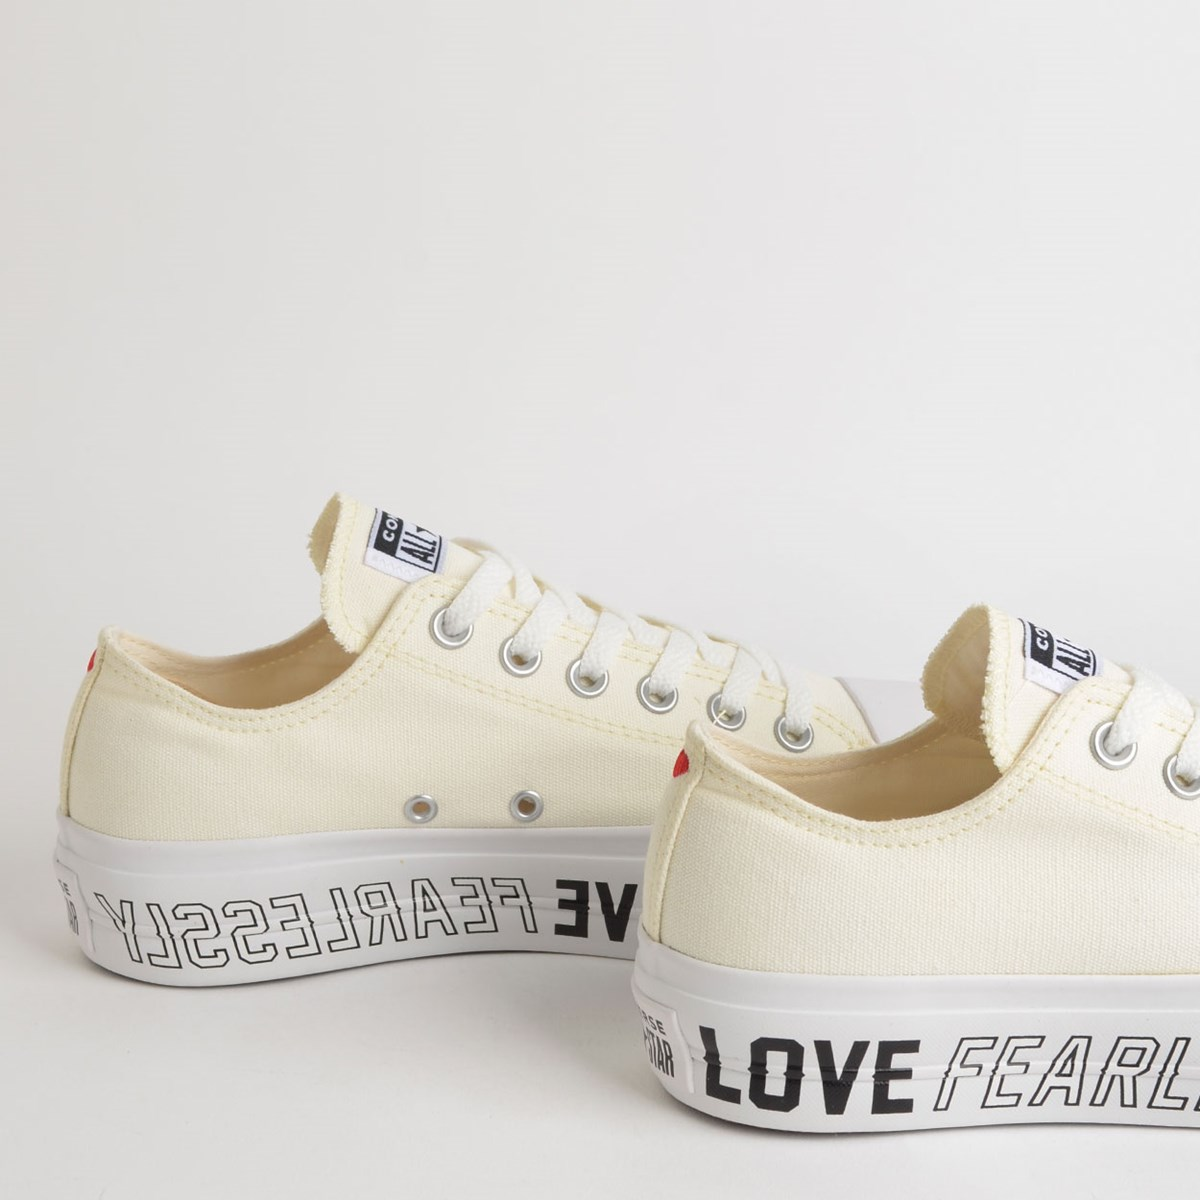 Tênis Converse Chuck Taylor All Star Love Fearlessly Platform Lift Ox Amendoa Branco CT13630001